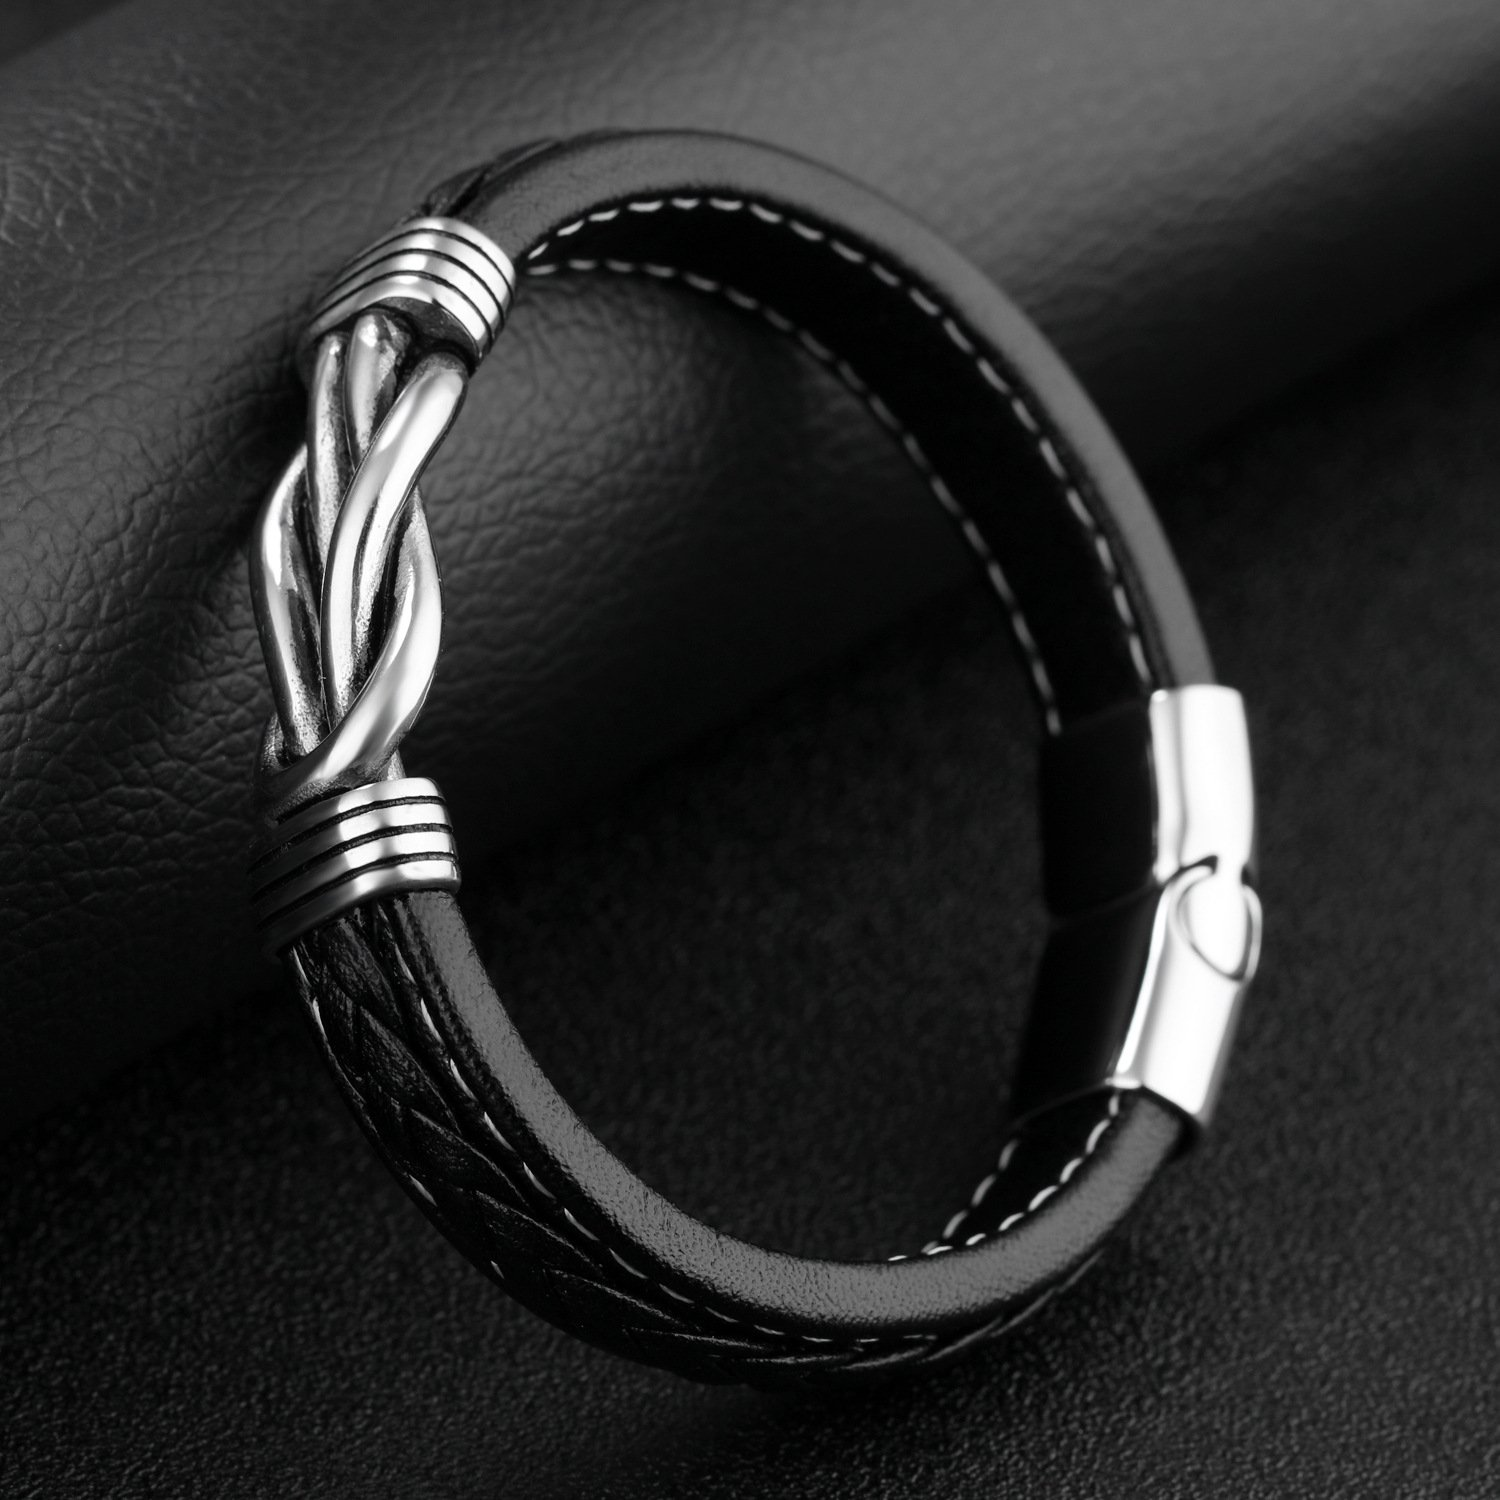 Men/'s Bracelet,Leather Cuff Bracelet for Boys Stainless Steel Charm Bangle Bracelet with Magnetic Clasp